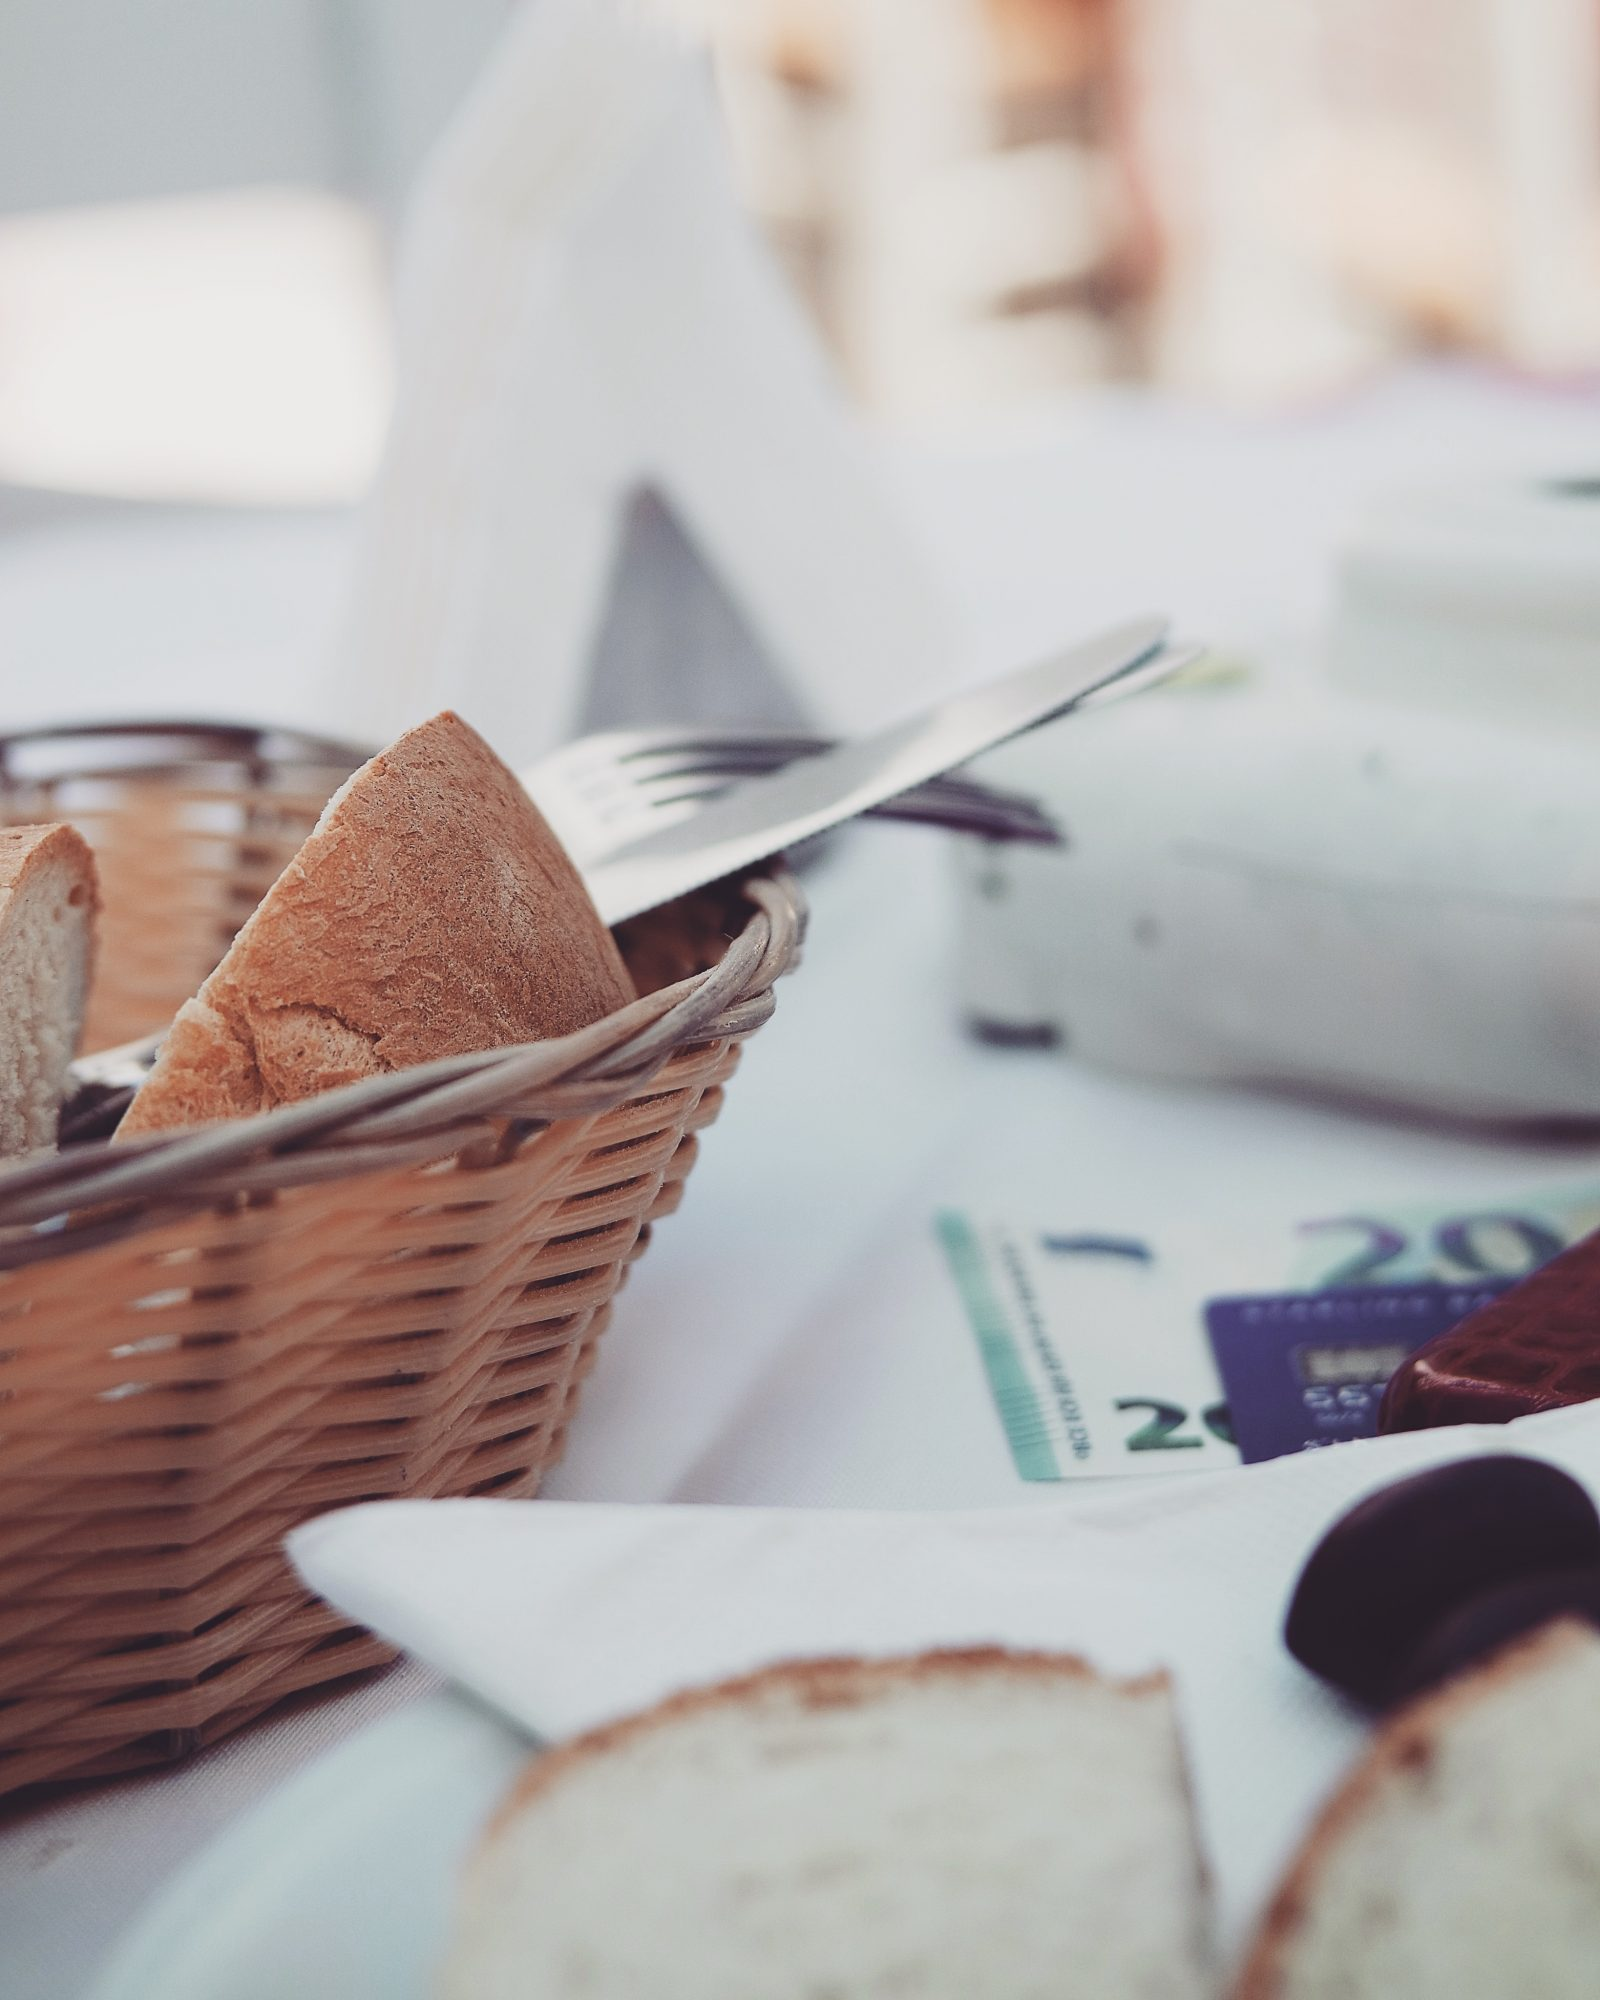 Starling Bank - Mykonos Bread Basket